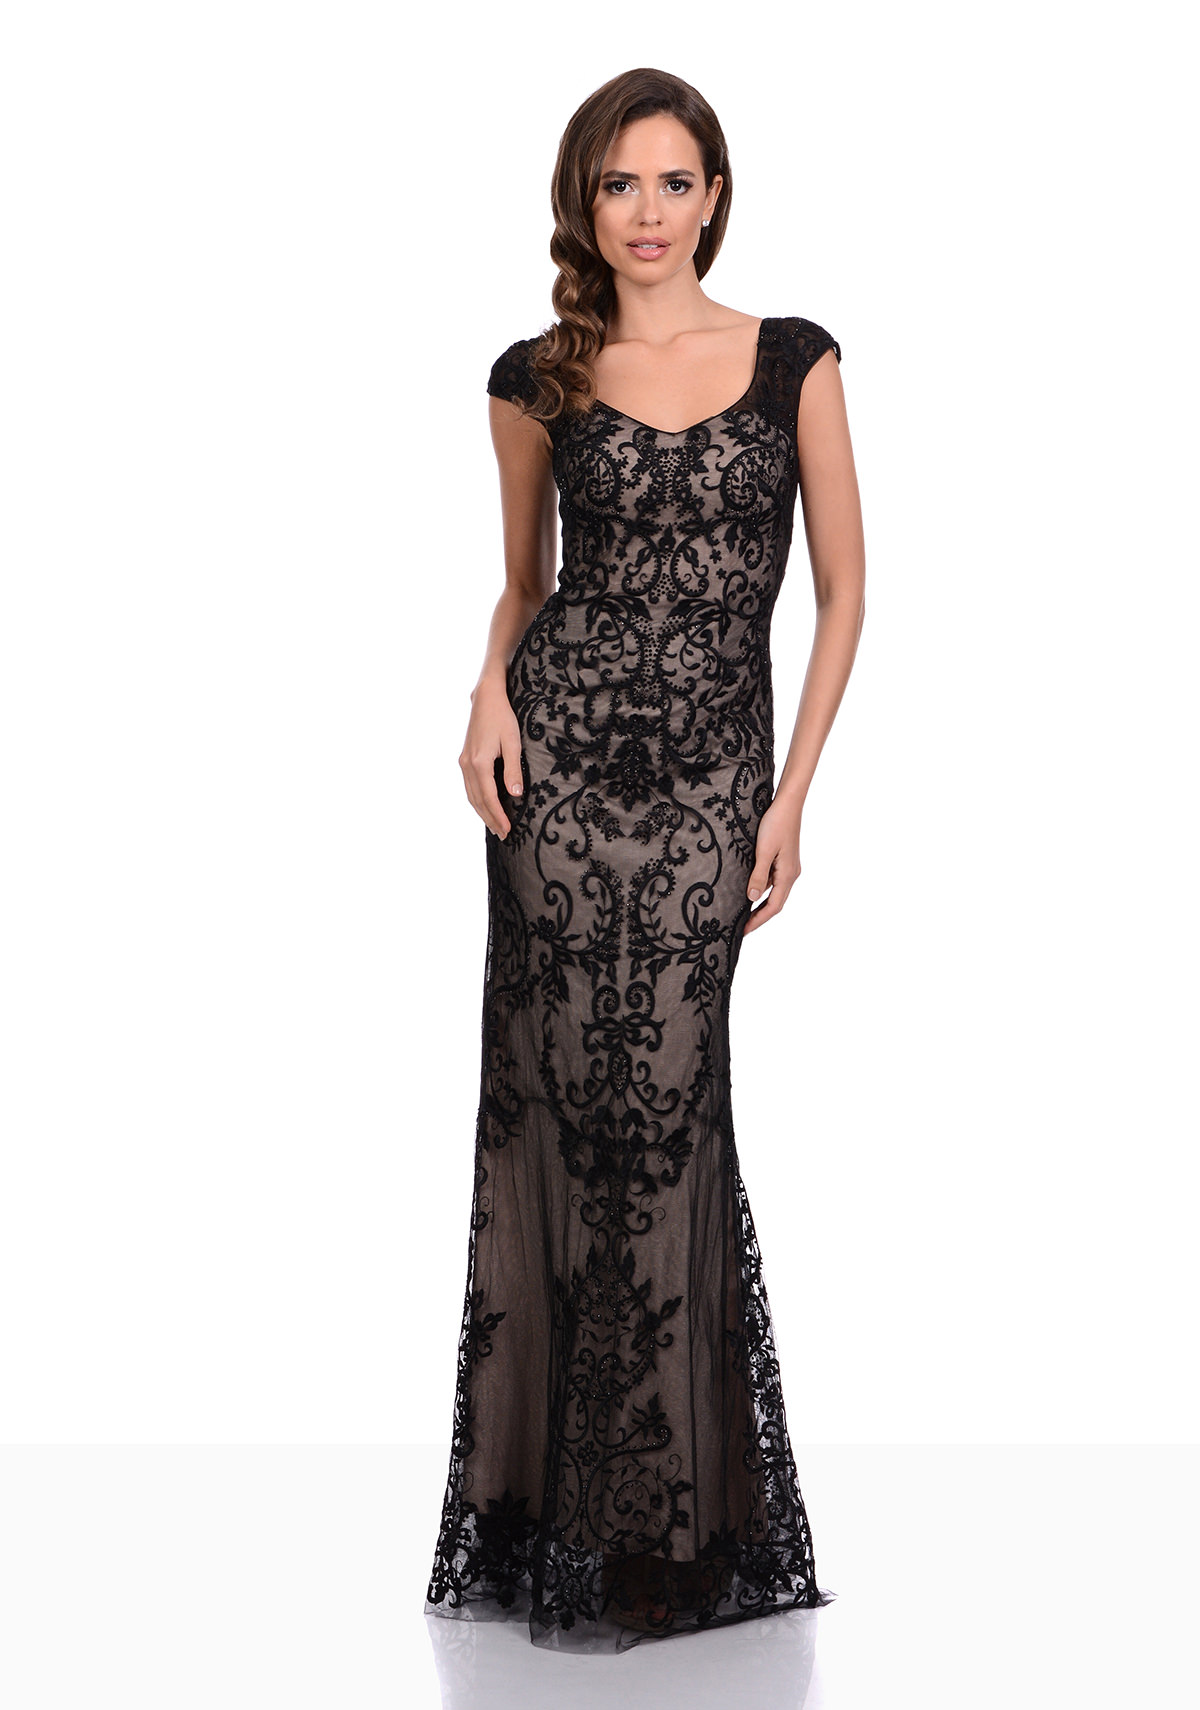 Shop Dillard's for the best selection of beautiful Juniors' lace dresses, available in a variety of necklines, sleeve lengths, and silhouettes.